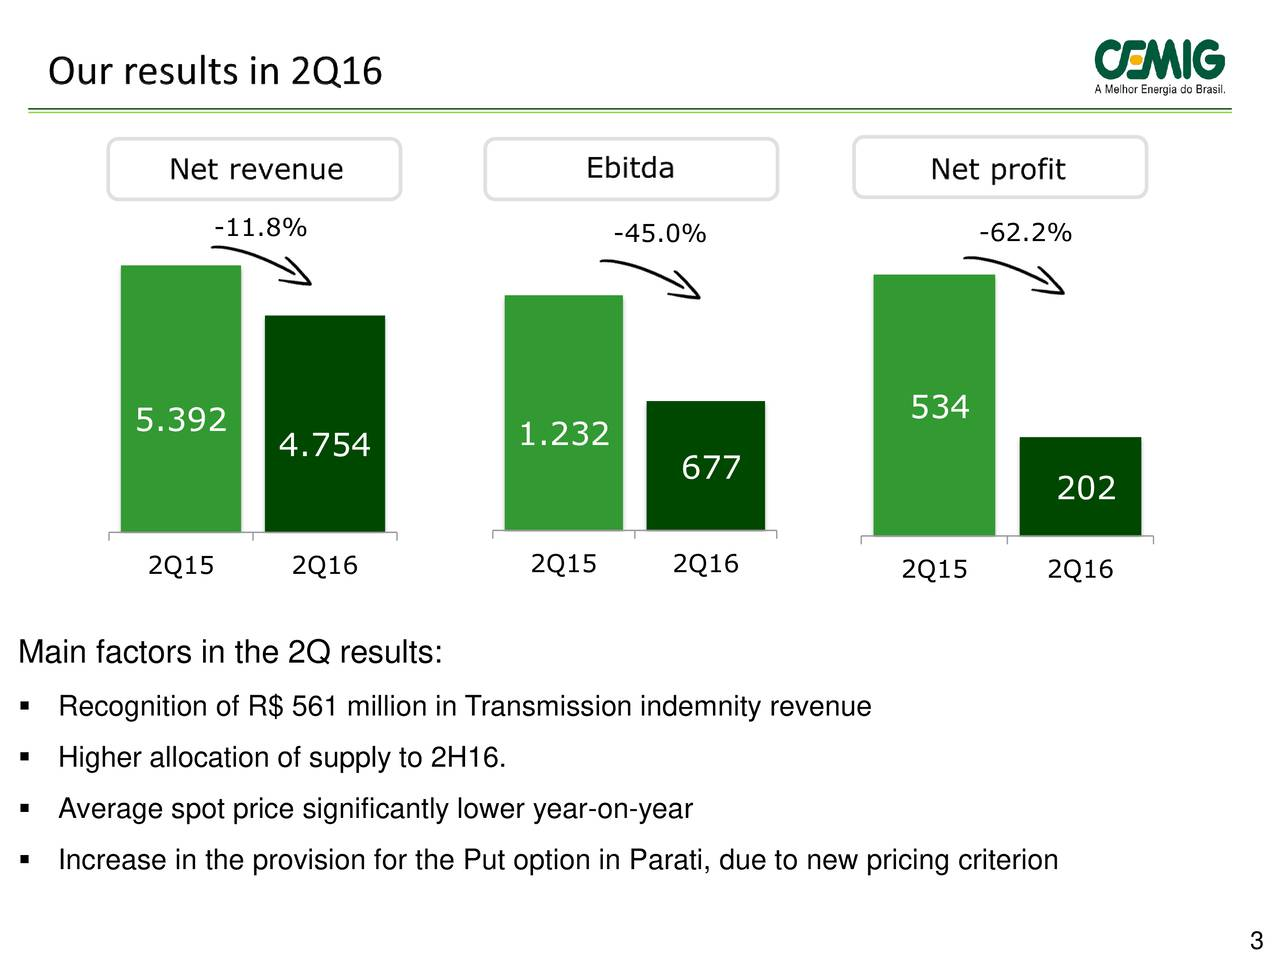 -45.0% -62.2% 5.392 534 4.754 1.232 677 202 2Q15 2Q16 2Q15 2Q16 2Q15 2Q16 Main factors in the 2Q results: Recognition of R$ 561 million in Transmission indemnity revenue Higher allocation of supply to 2H16. Average spot price significantly lower year-on-year Increase in the provision for the Put option in Parati, due to new pricing criterion